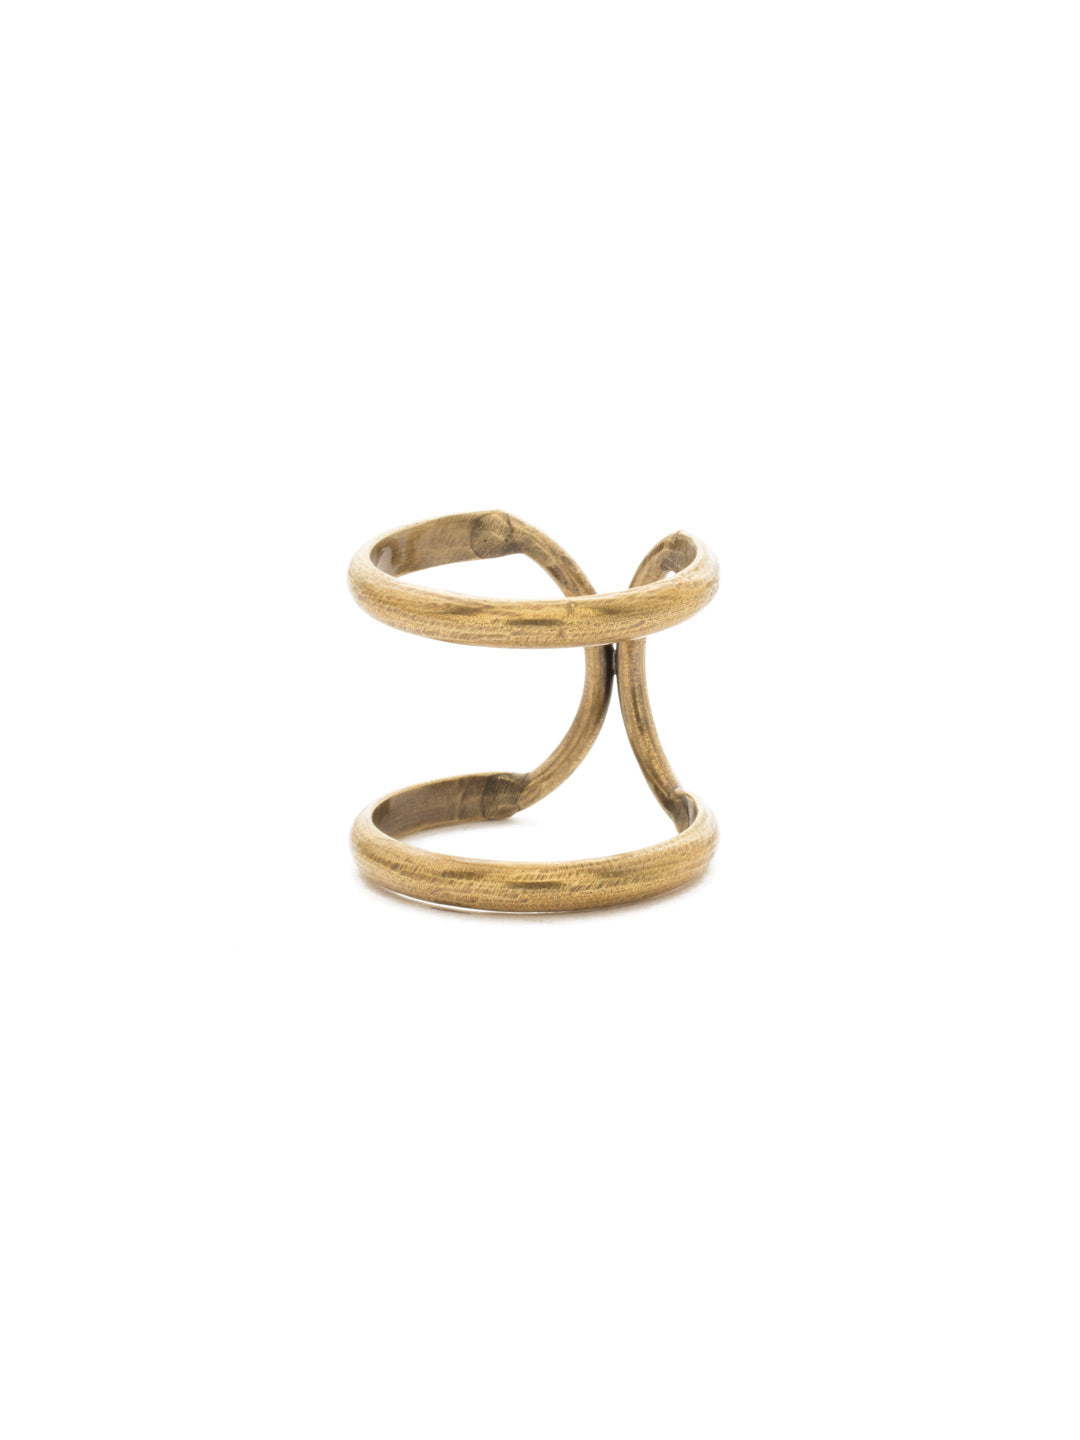 Running In Circles Stacked Ring - RDW3AGCRY